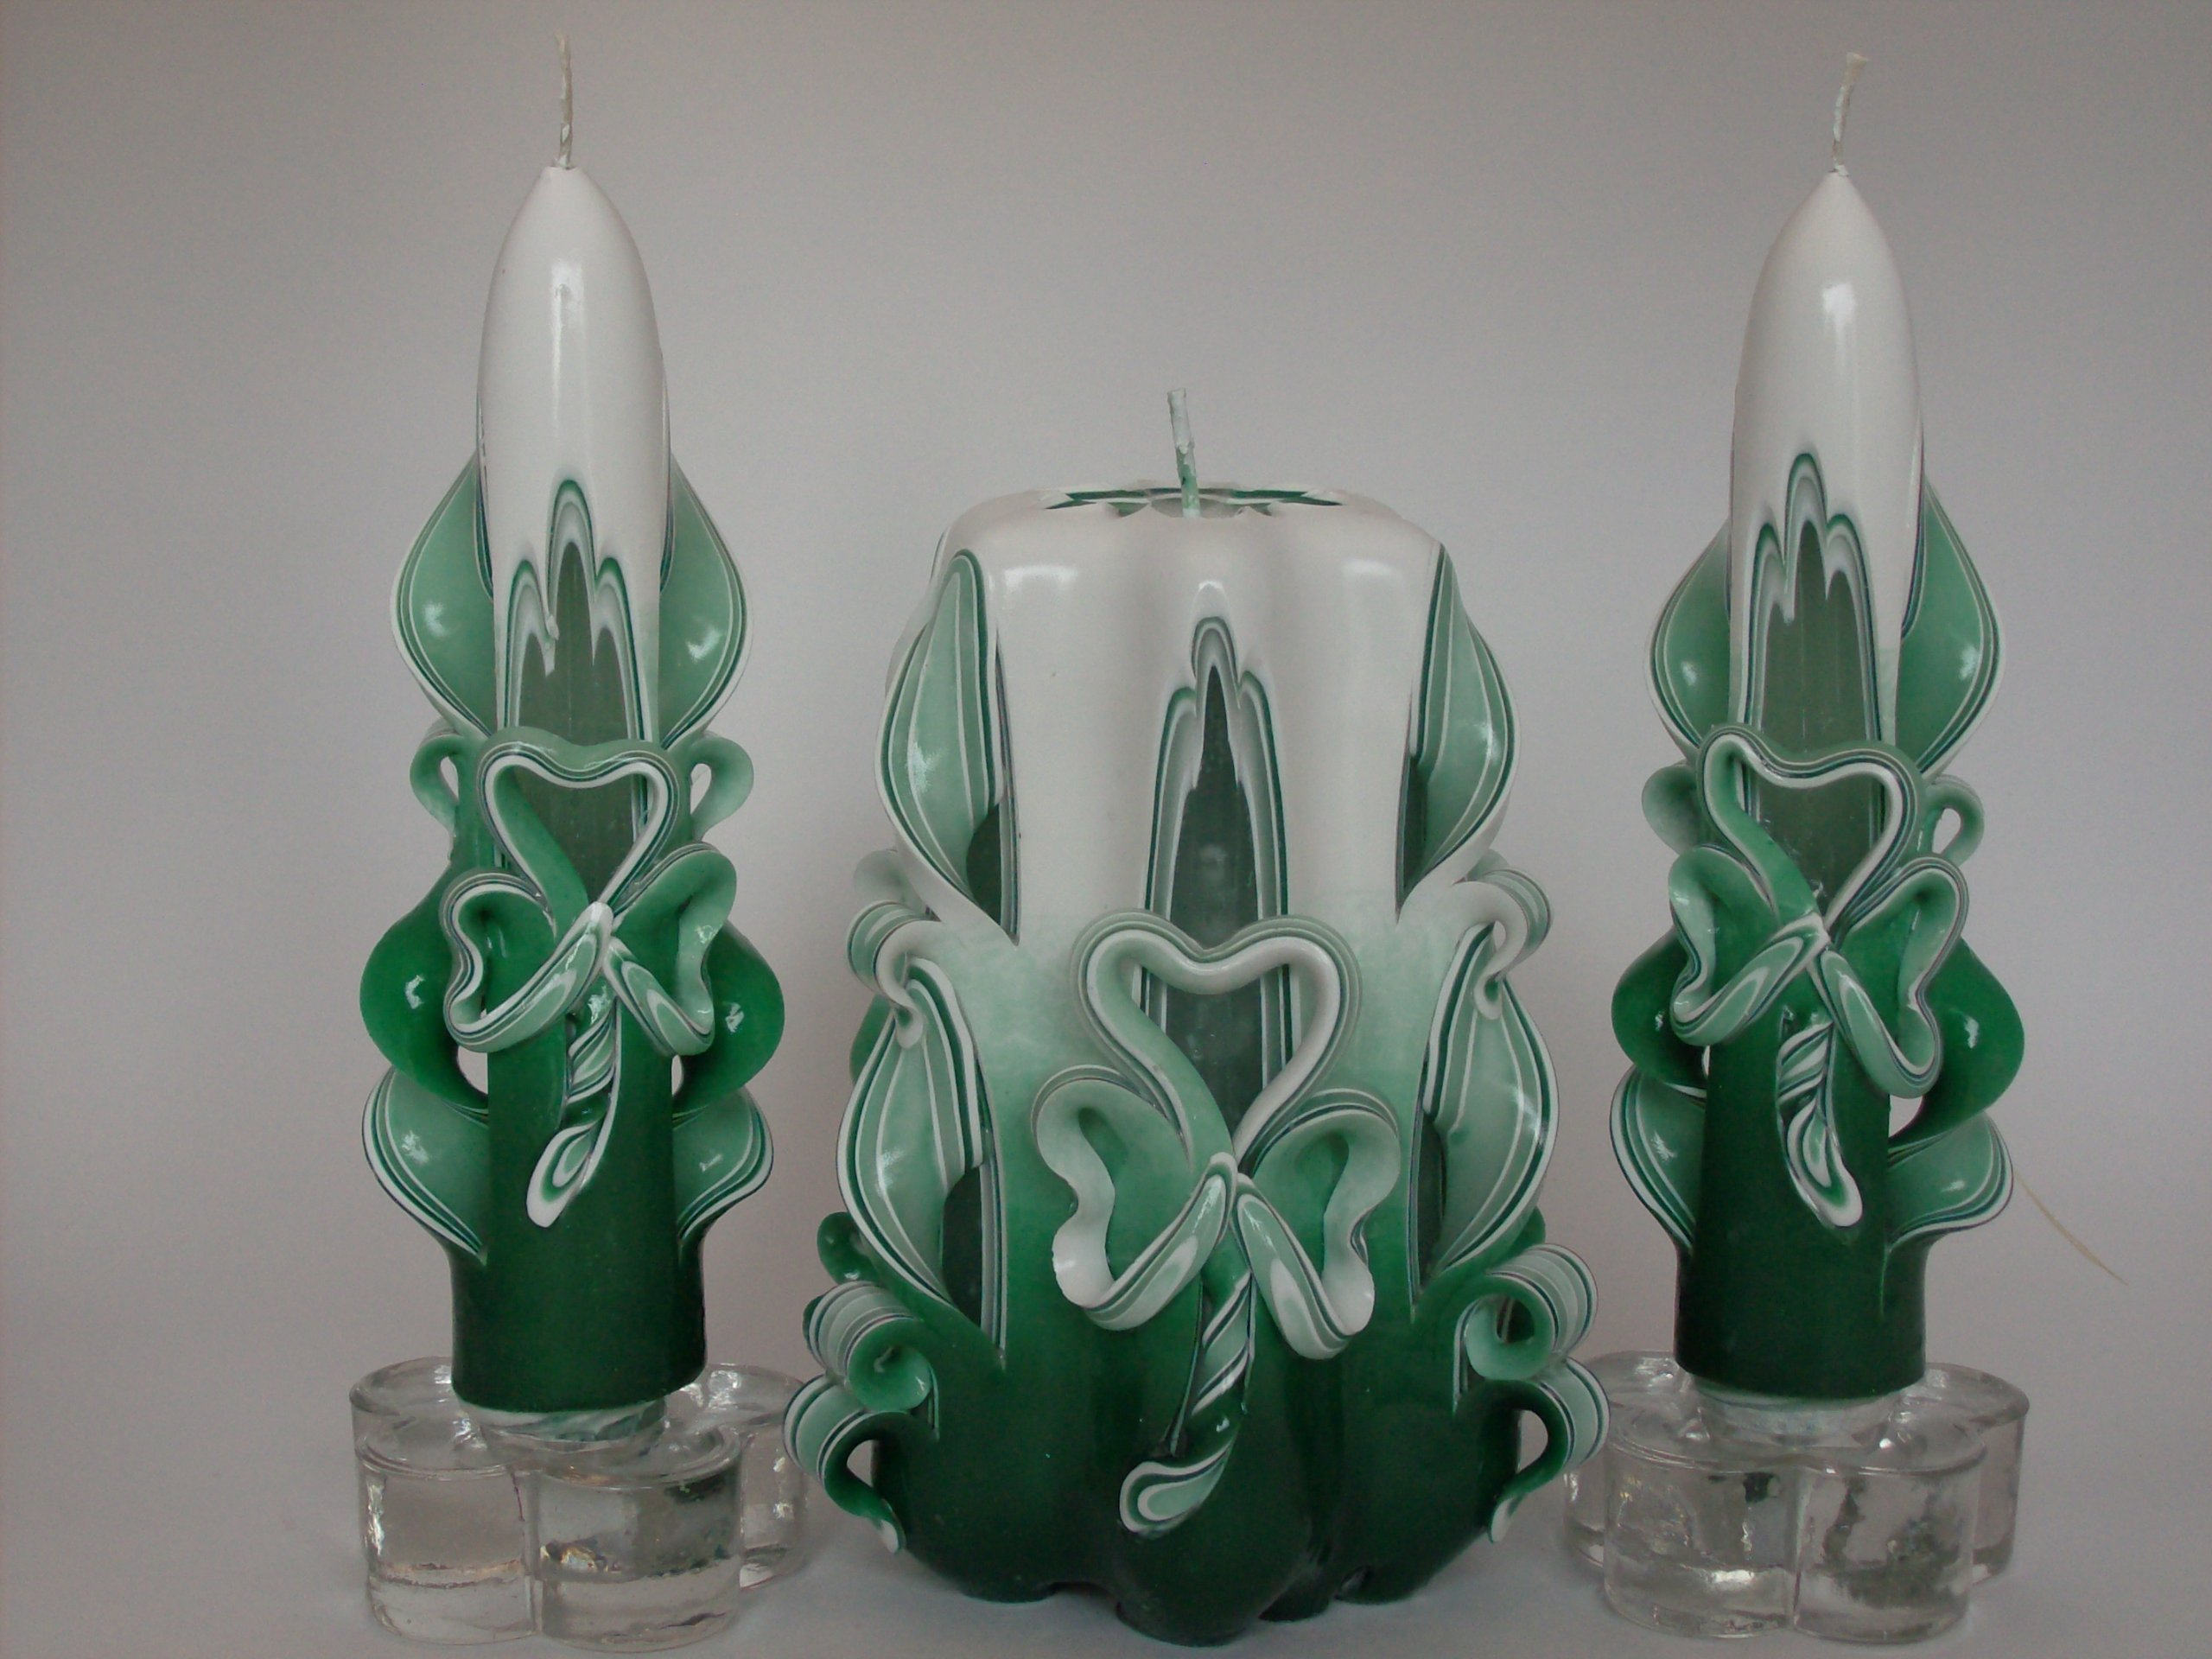 St. Patrick's Day Shamrock Candle Set - Ombre (Variegated Green)